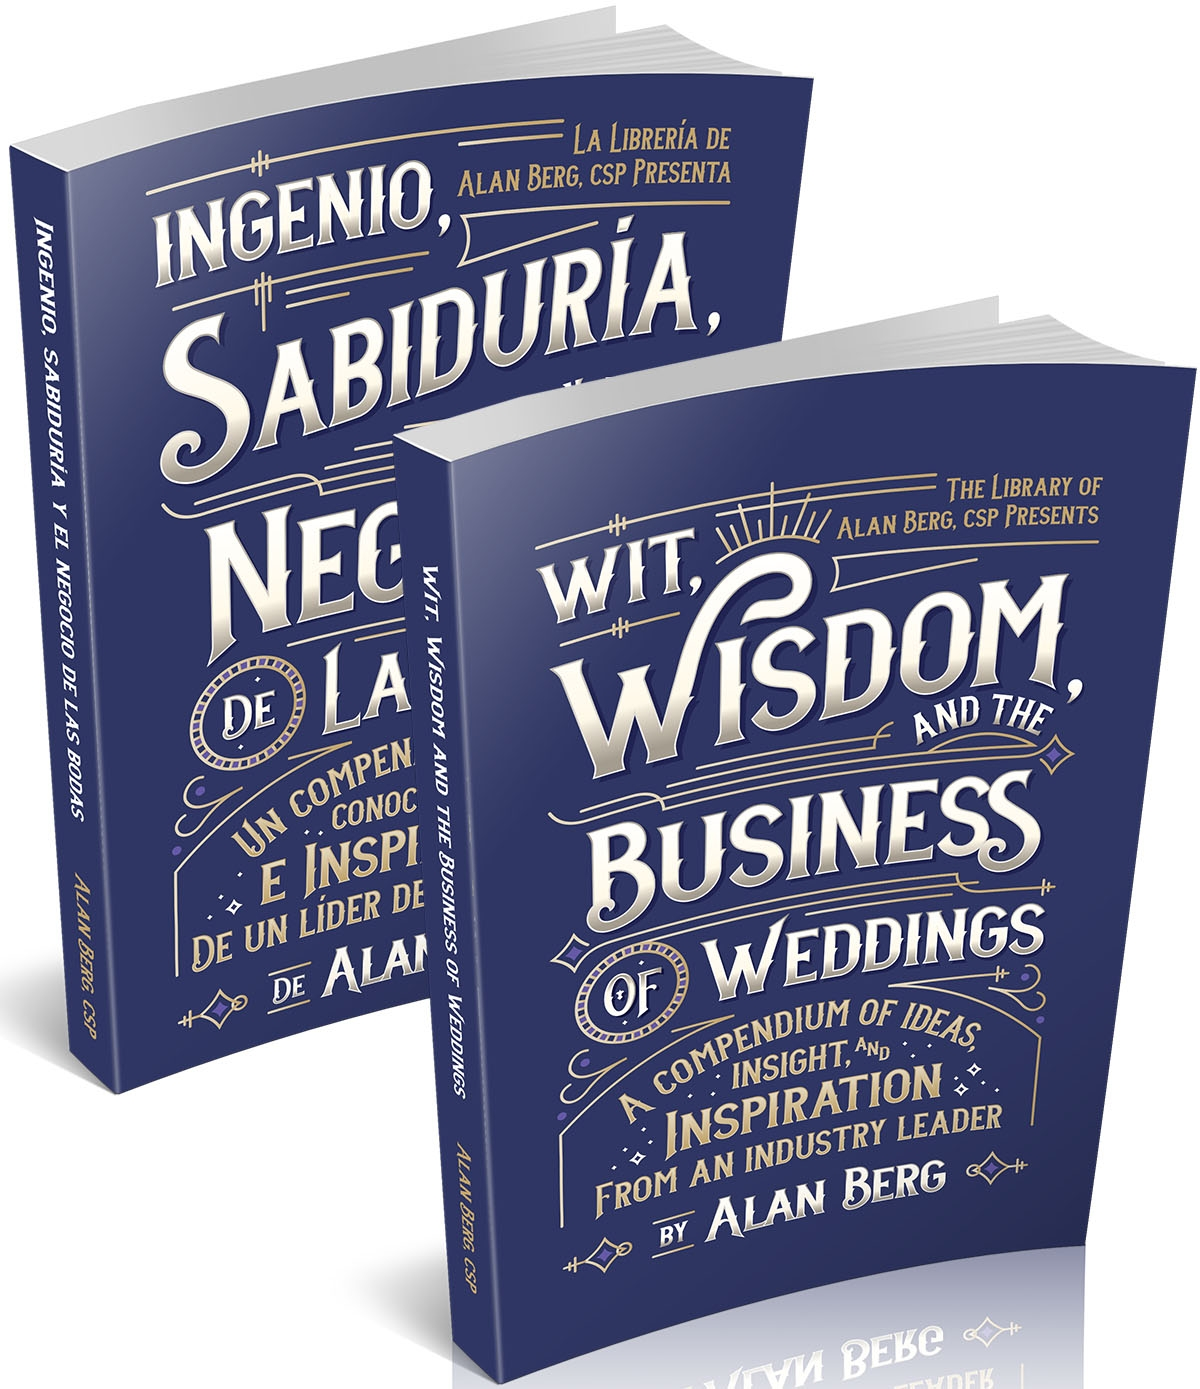 Wit Wisdom and the Business of Weddings English and Spanish - Alan Berg CSP